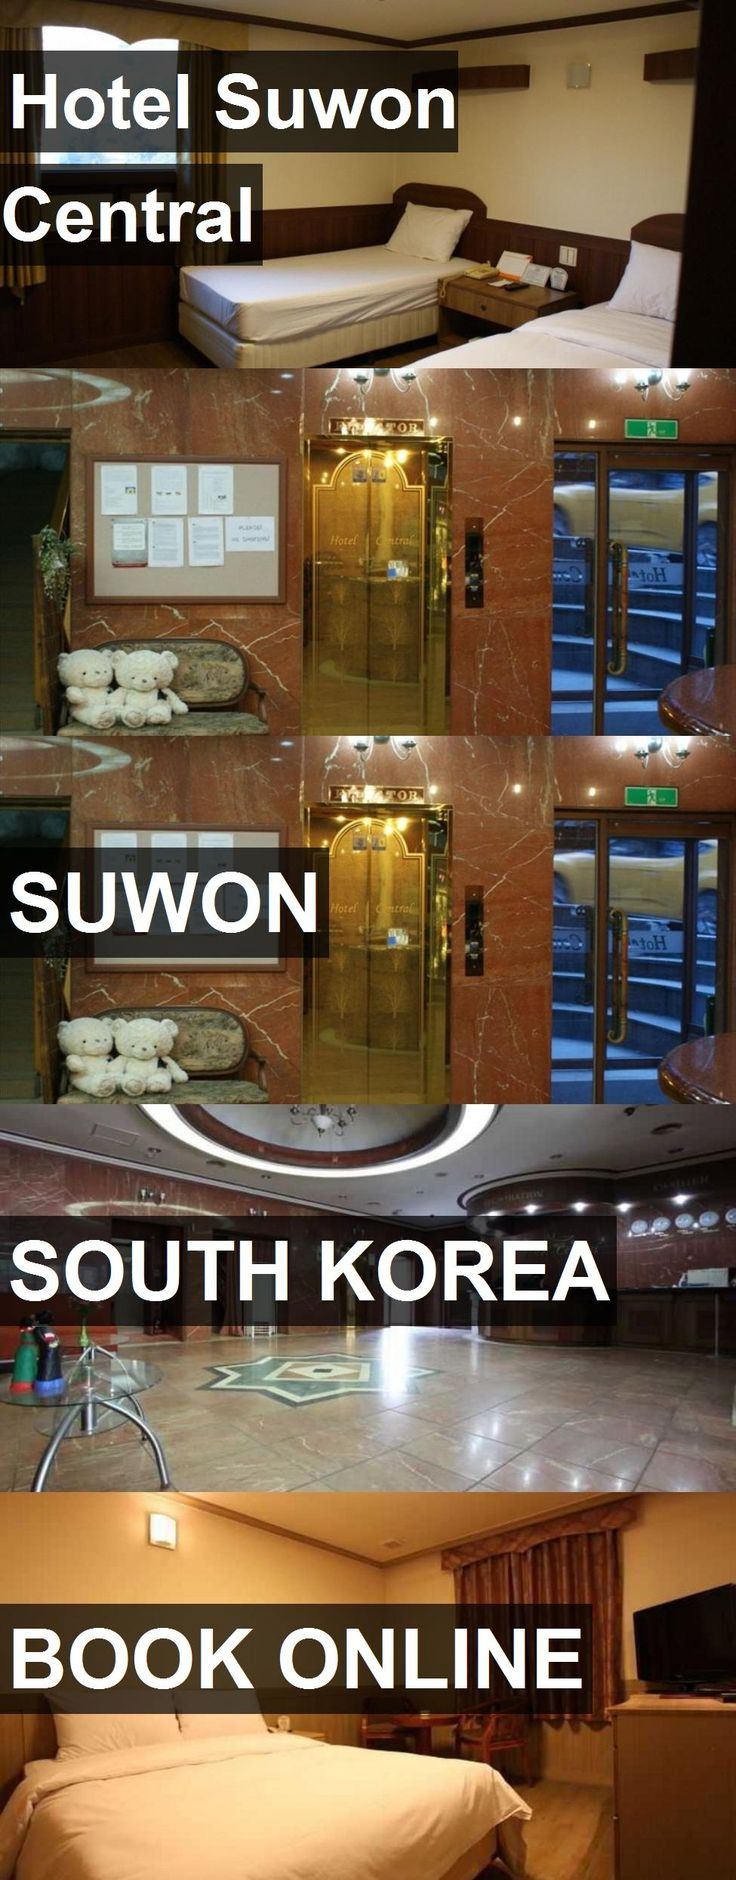 Hotel Suwon Central in Suwon, South Korea. For more information, photos, reviews and best prices please follow the link. #SouthKorea #Suwon #travel #vacation #hotel